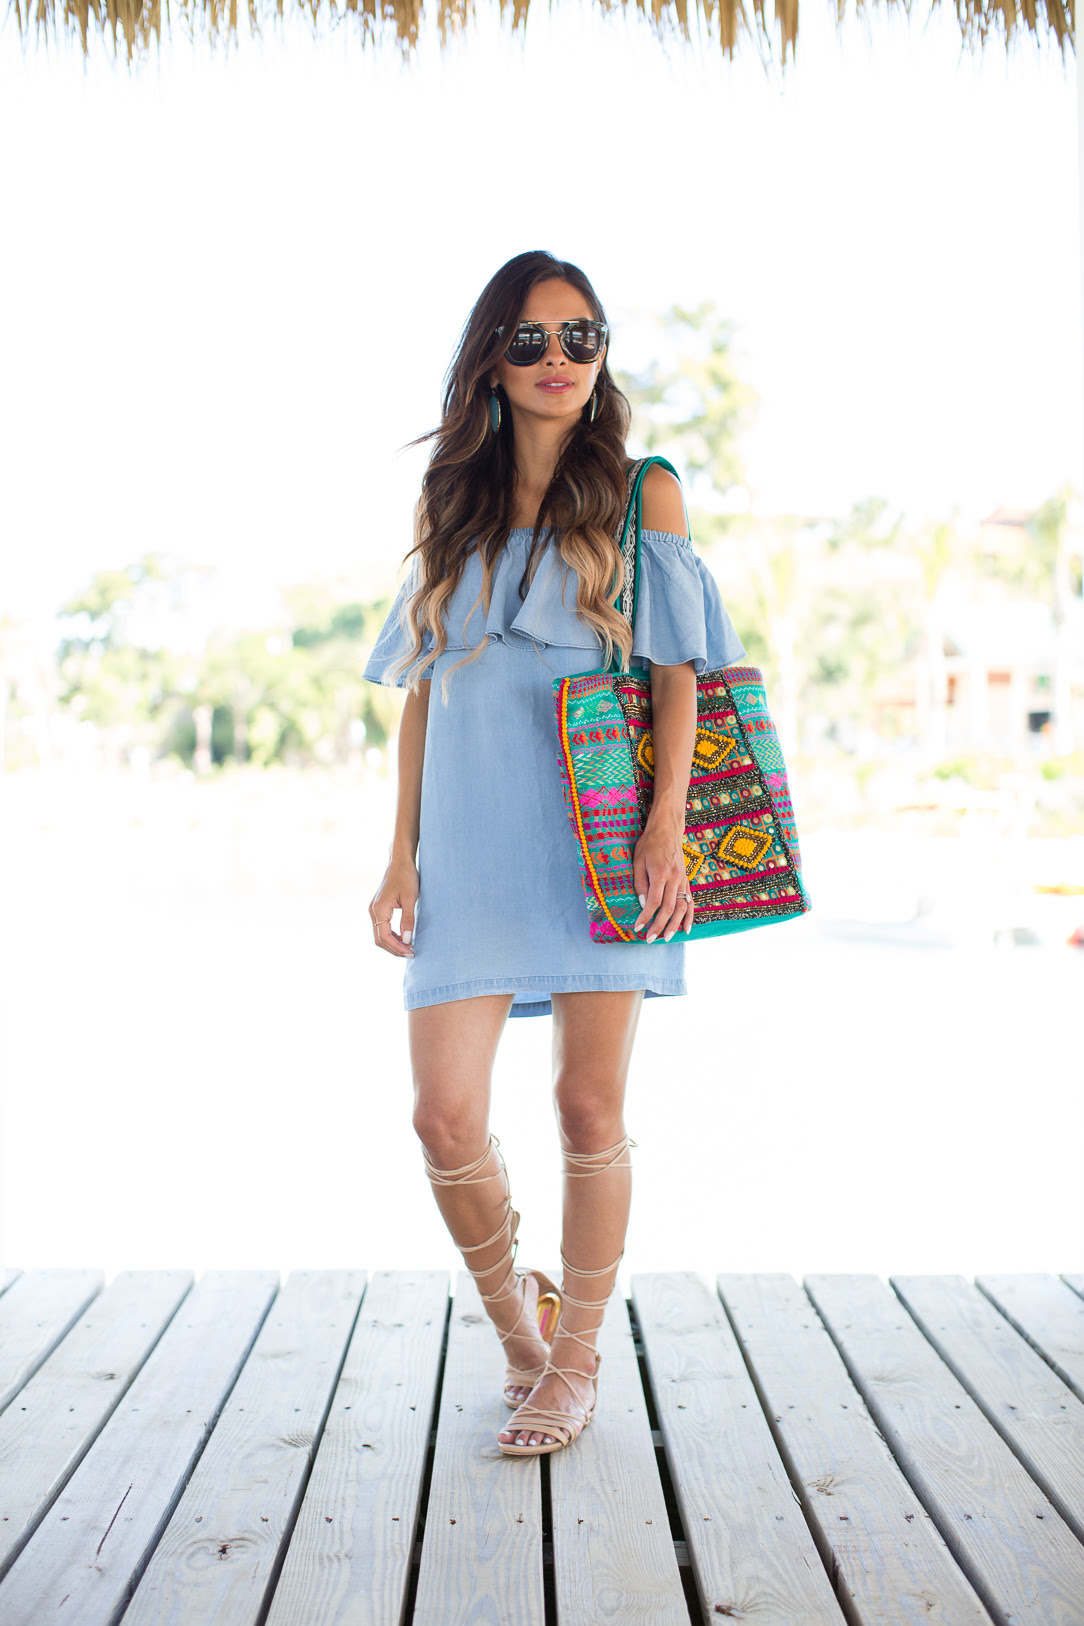 Denim Dress In The Dominican Republic. - Mia Mia Mine